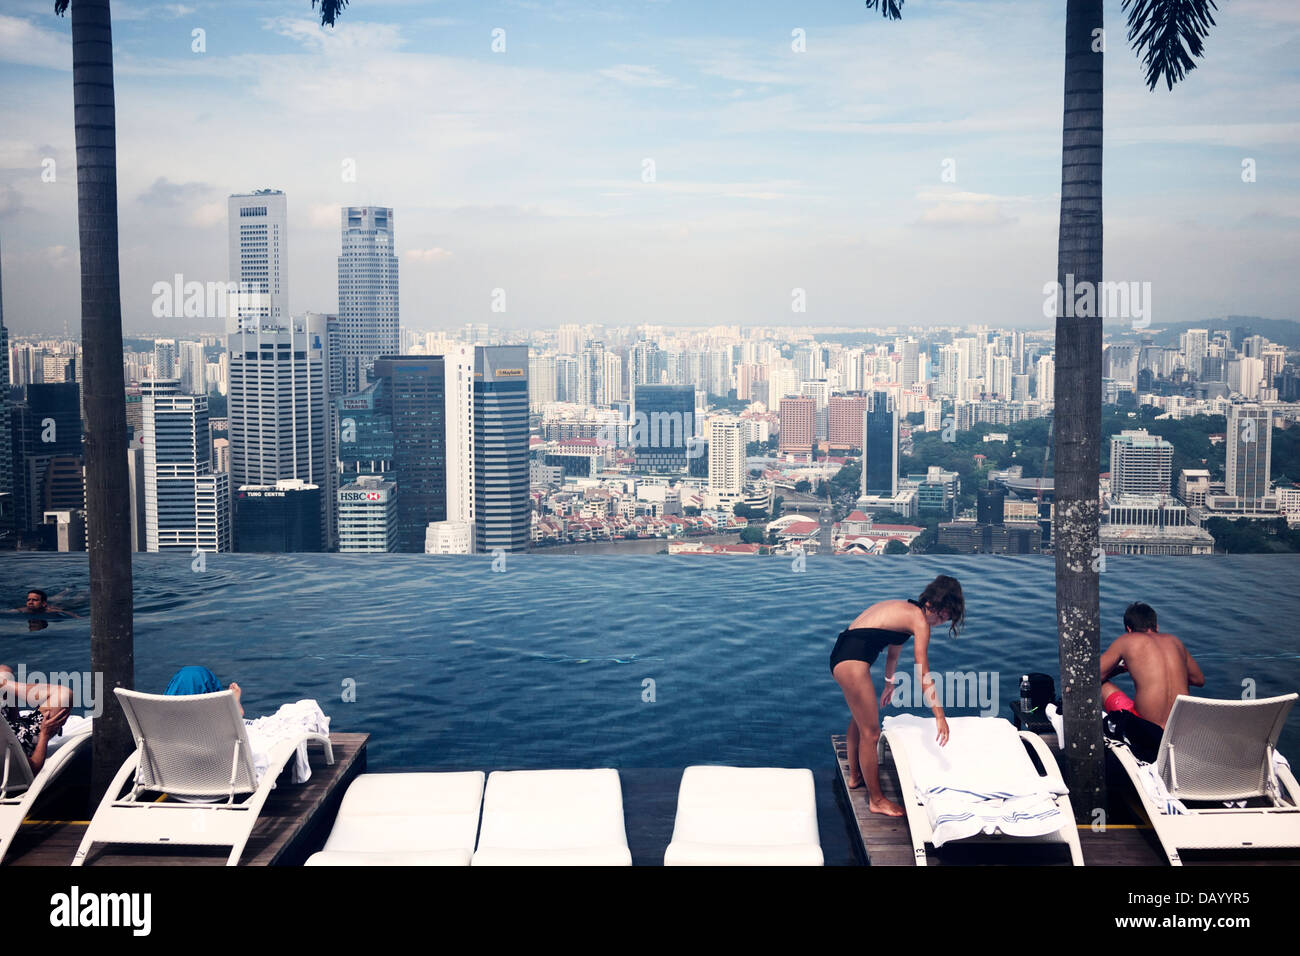 Hotel guests enjoying Singapore's city skyline by the Marina Bay Sand's infinity pool deck - Stock Image